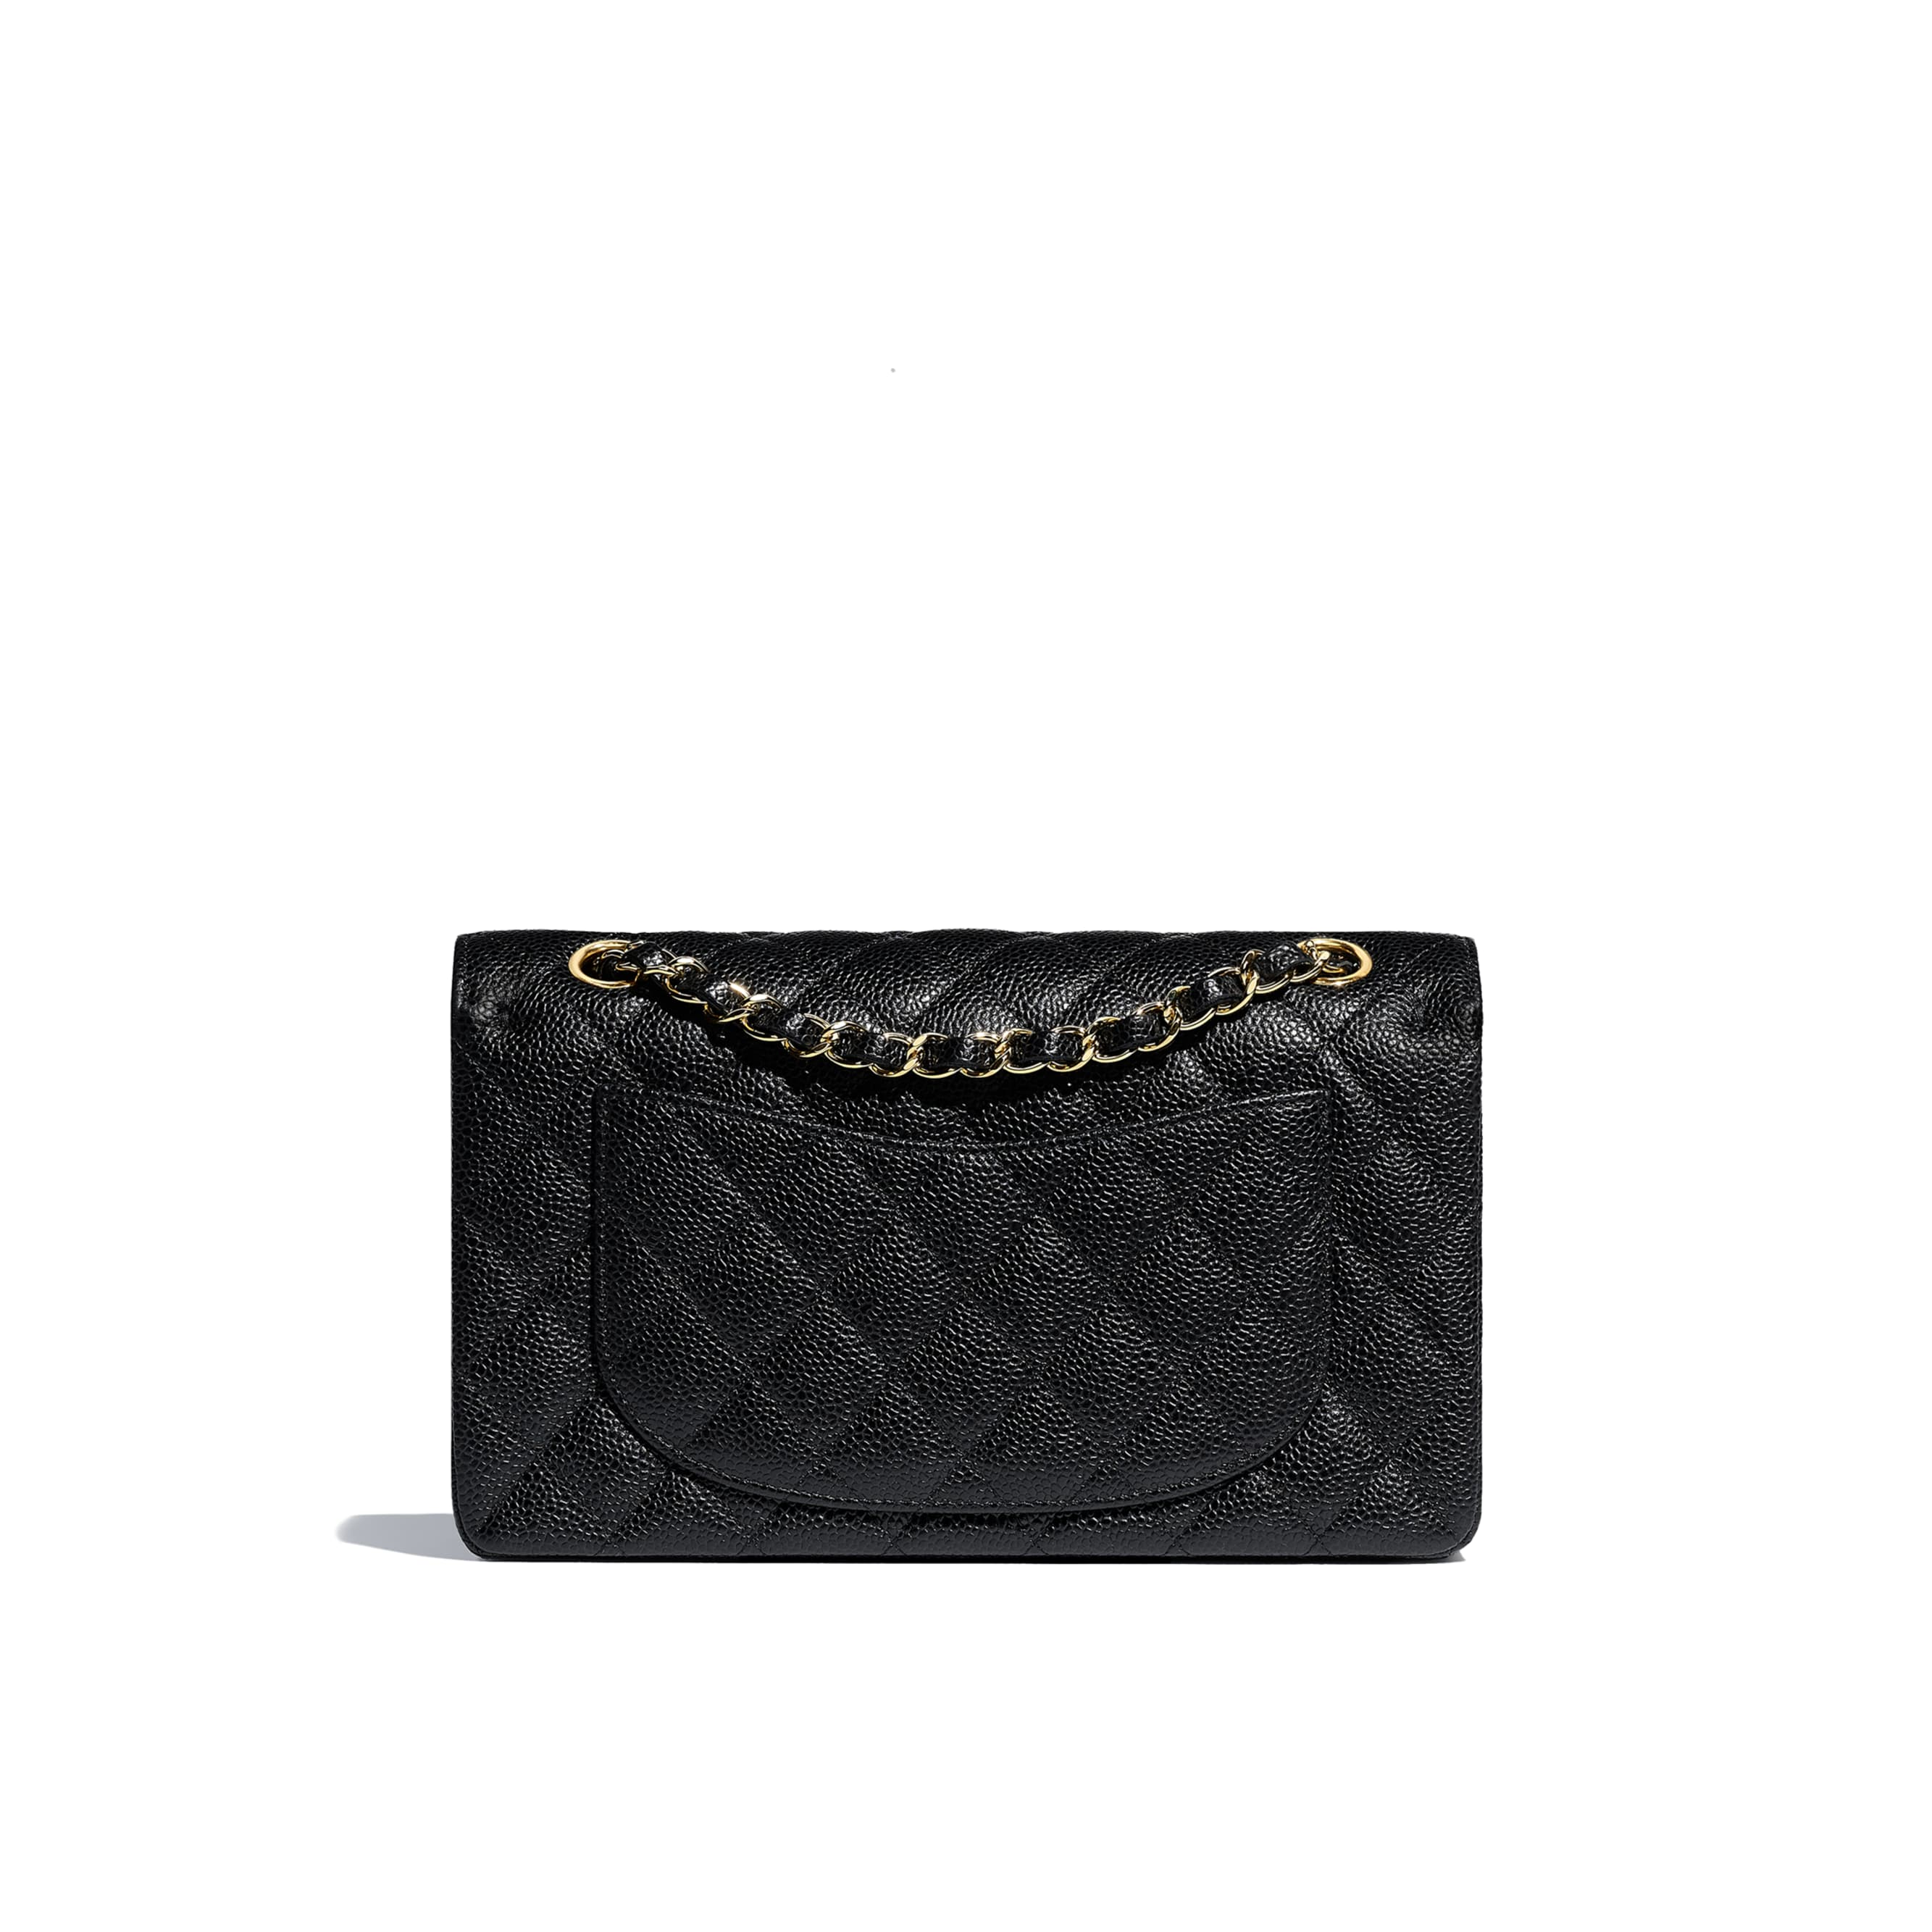 Classic Handbag - Black - Grained Calfskin & Gold-Tone Metal - CHANEL - Alternative view - see standard sized version